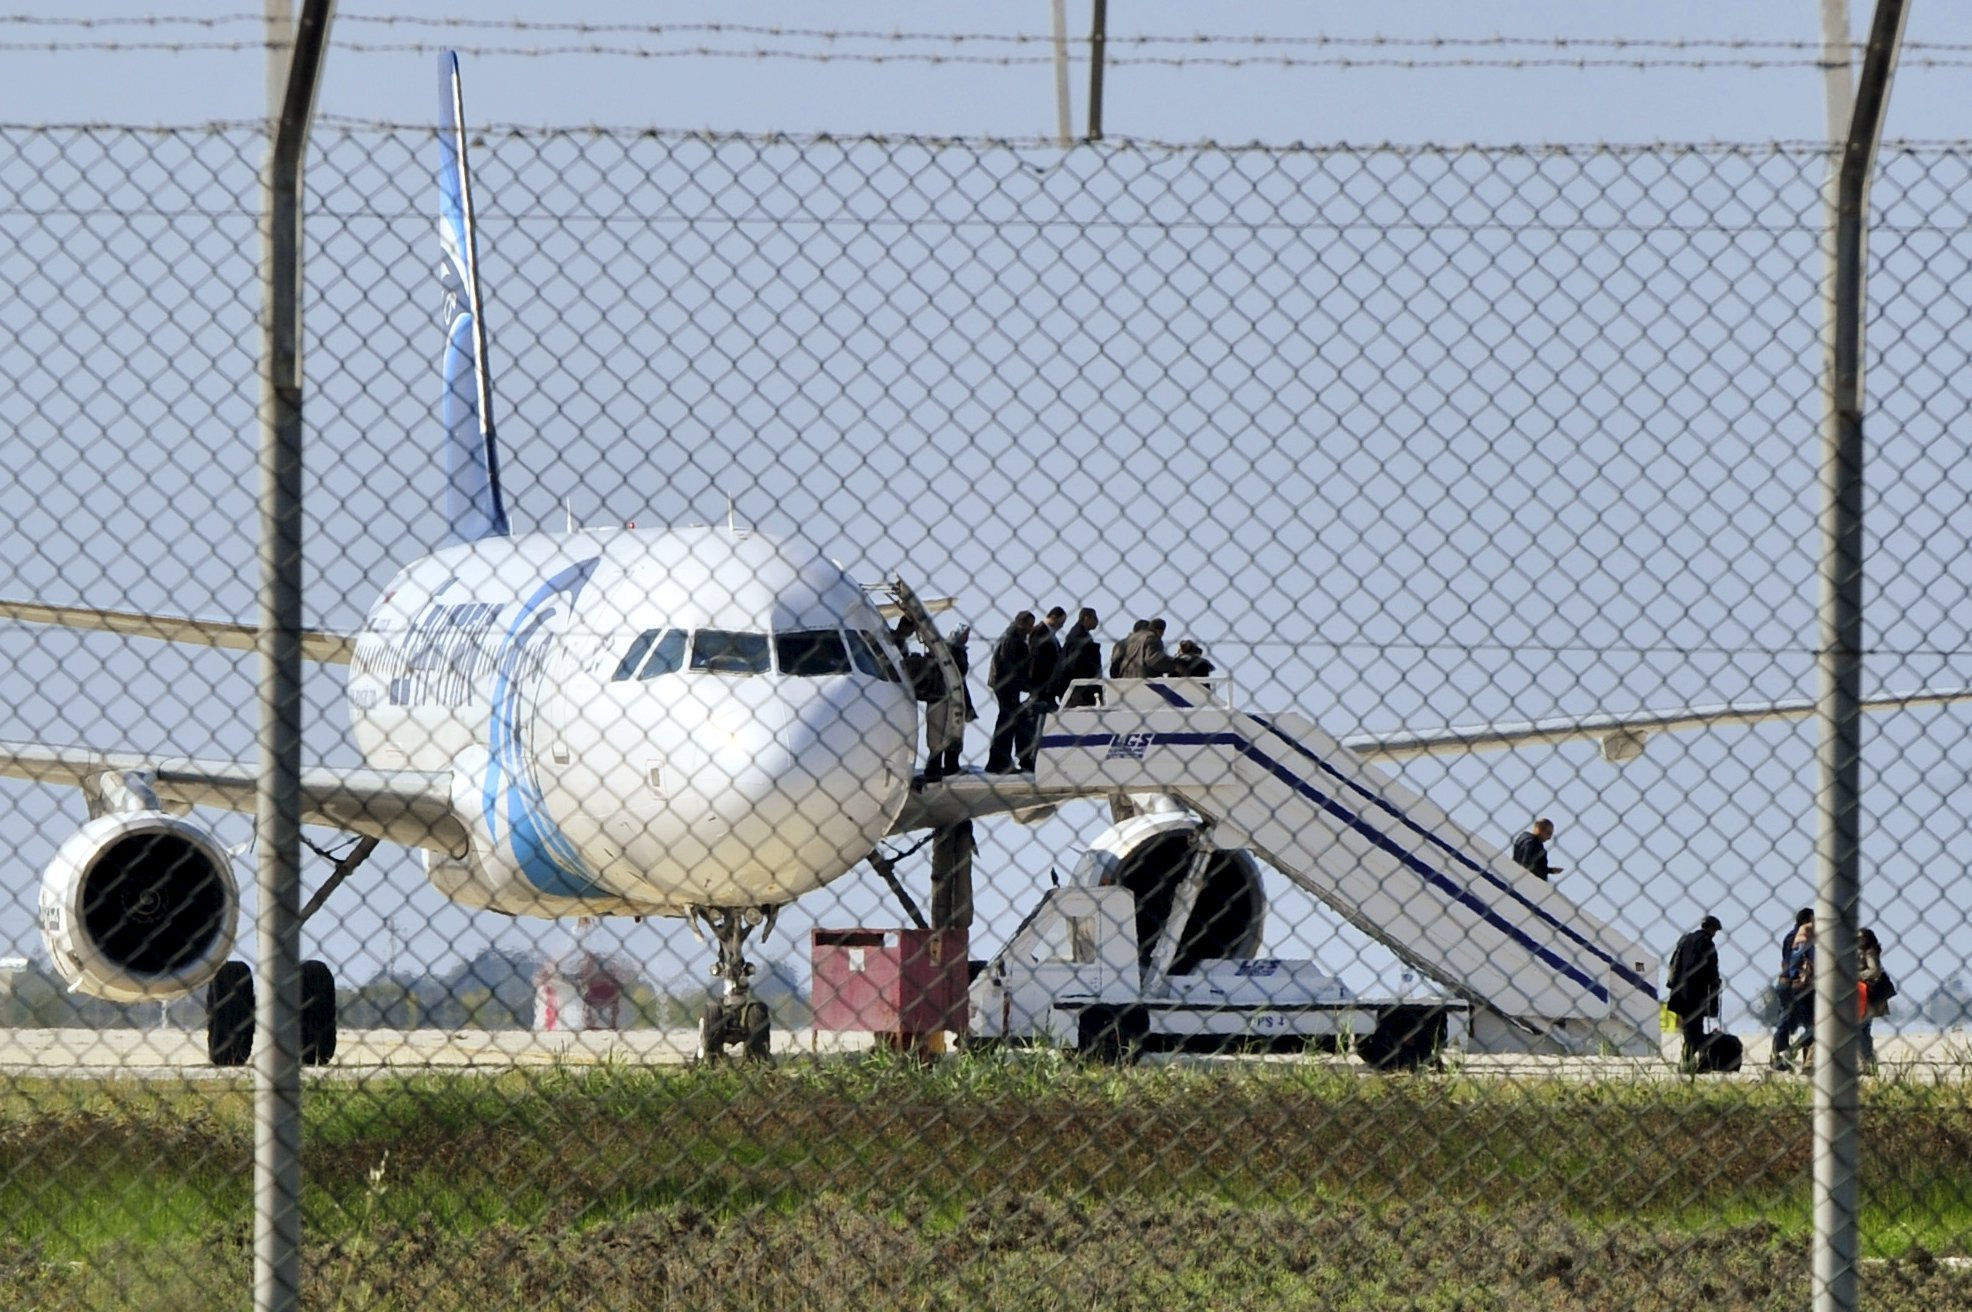 Passengers evacuate a hijacked EgyptAir Airbus 320 plane at Larnaca airport, Cyprus, March 29, 2016. REUTERS/Yiannis Kourtoglou